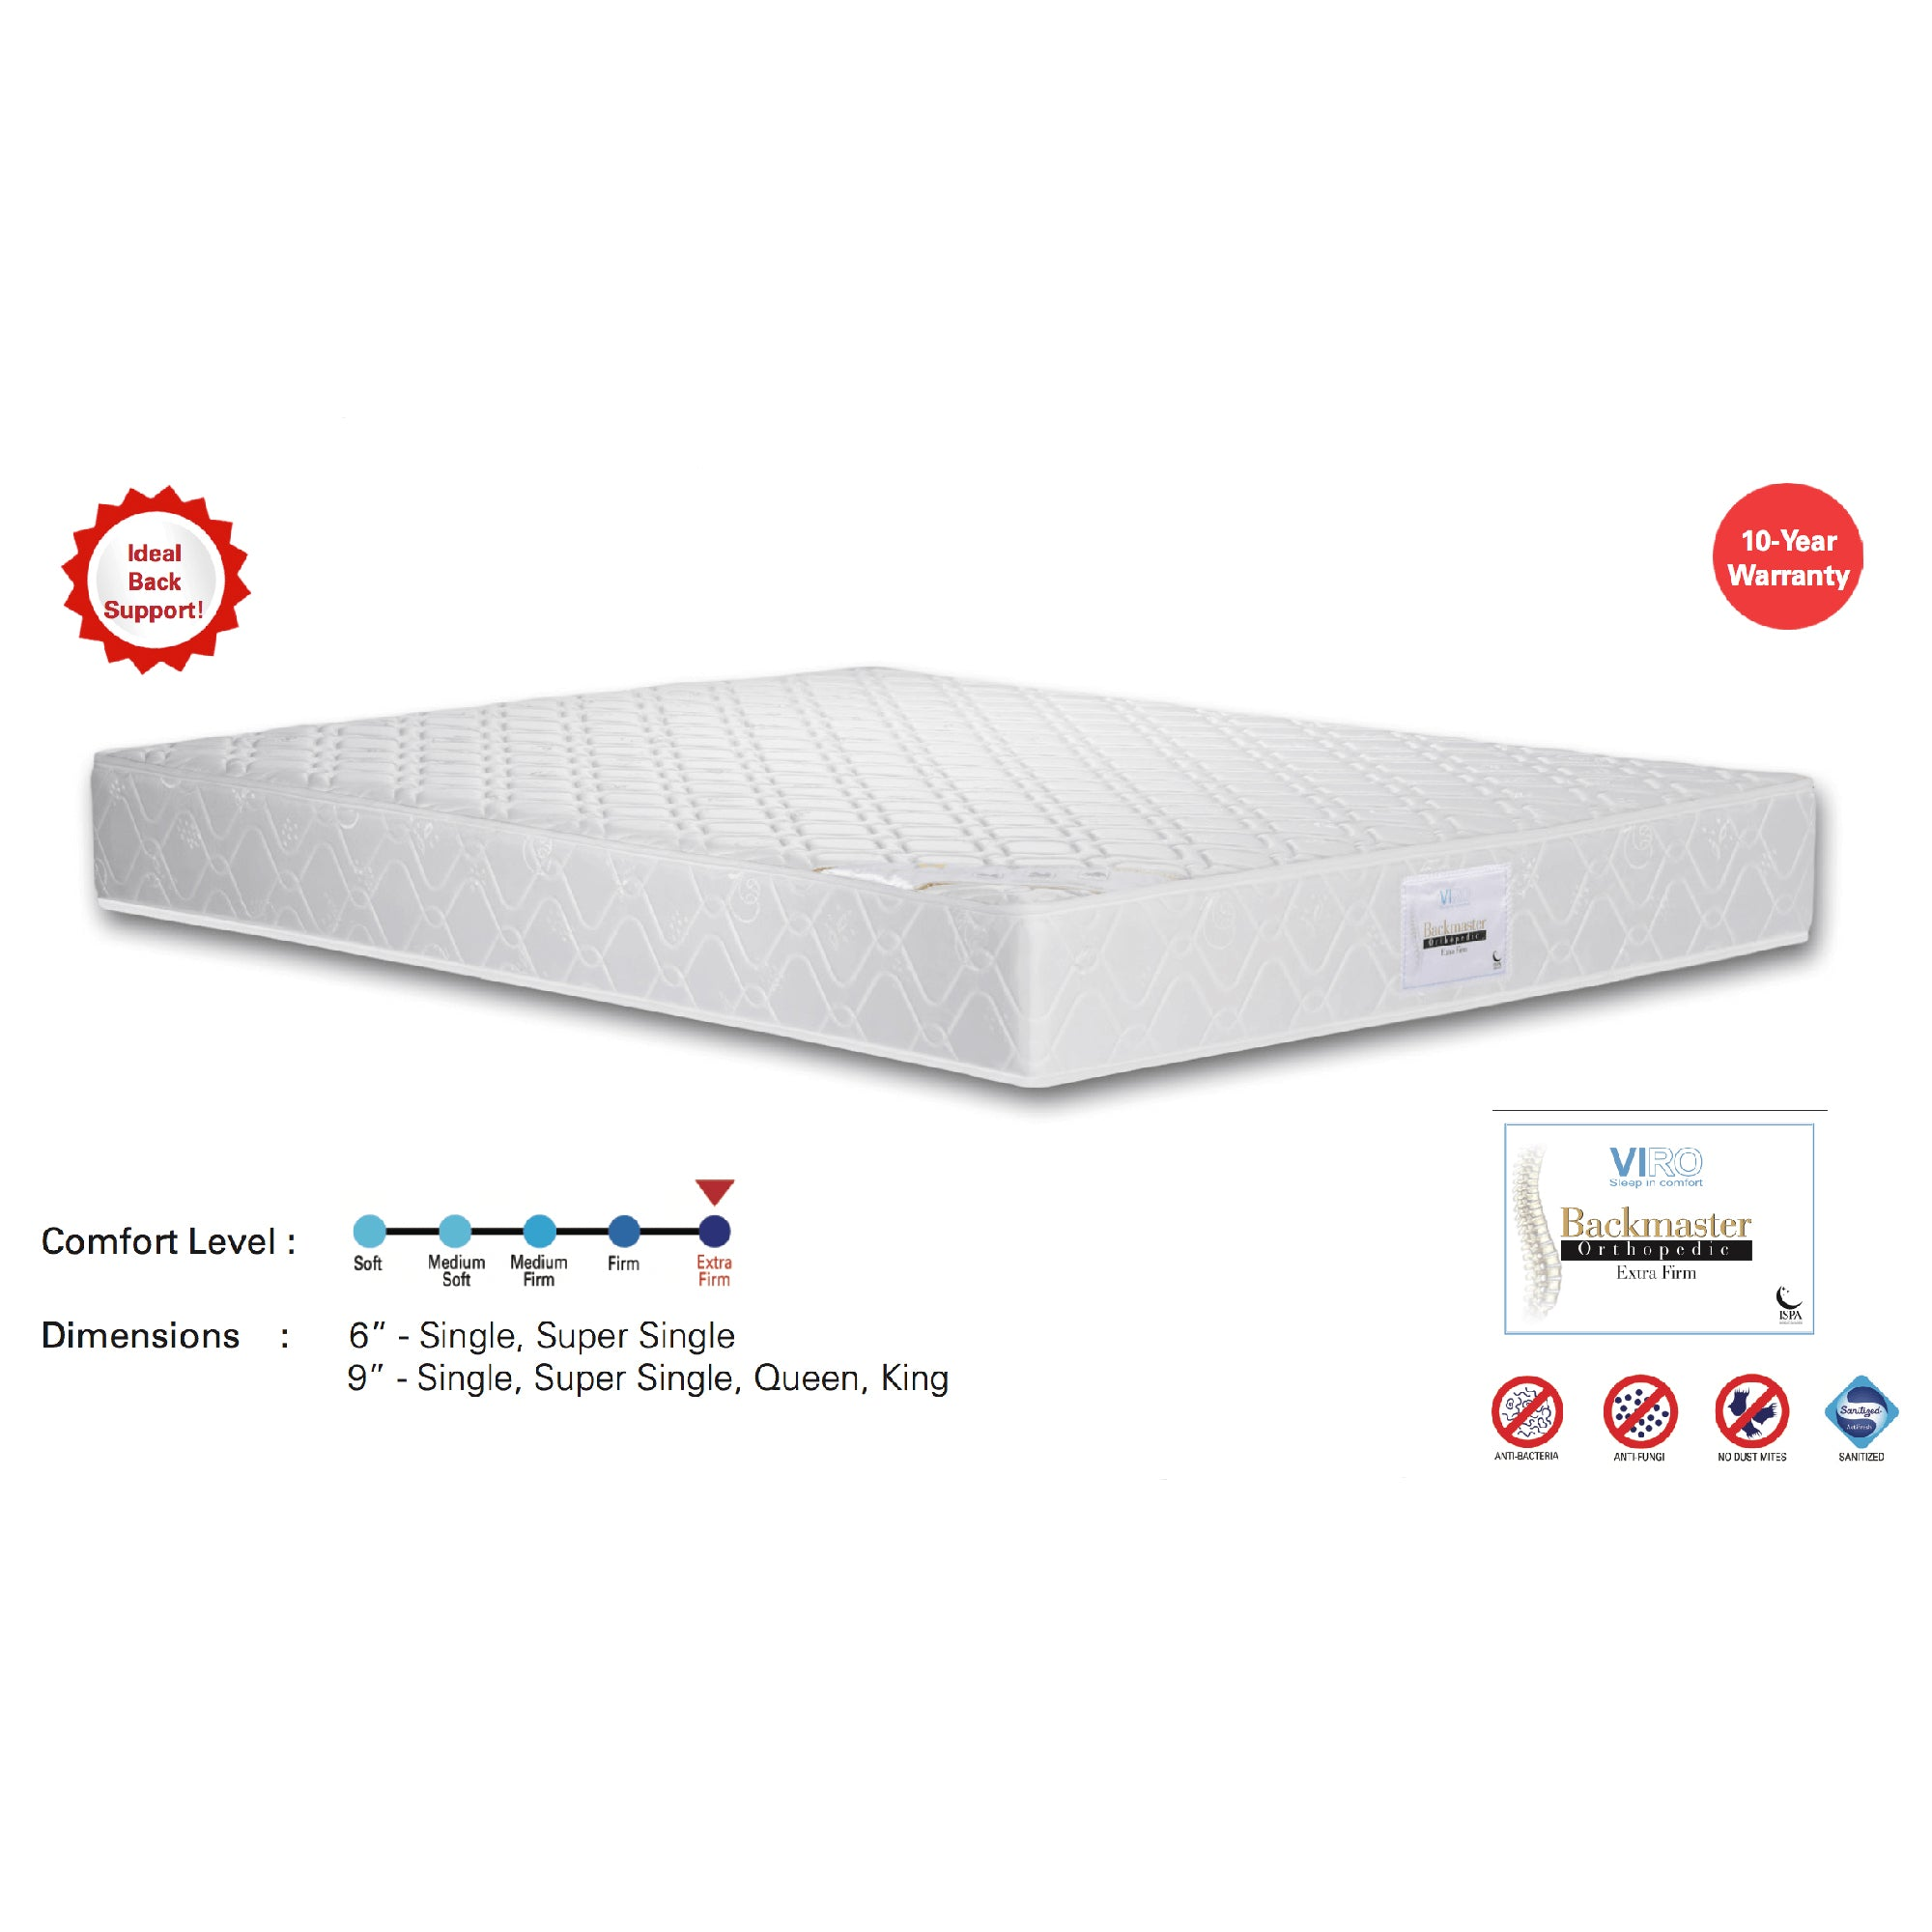 Viro Backmaster Spring Mattress (3 Feet Single Size x 9